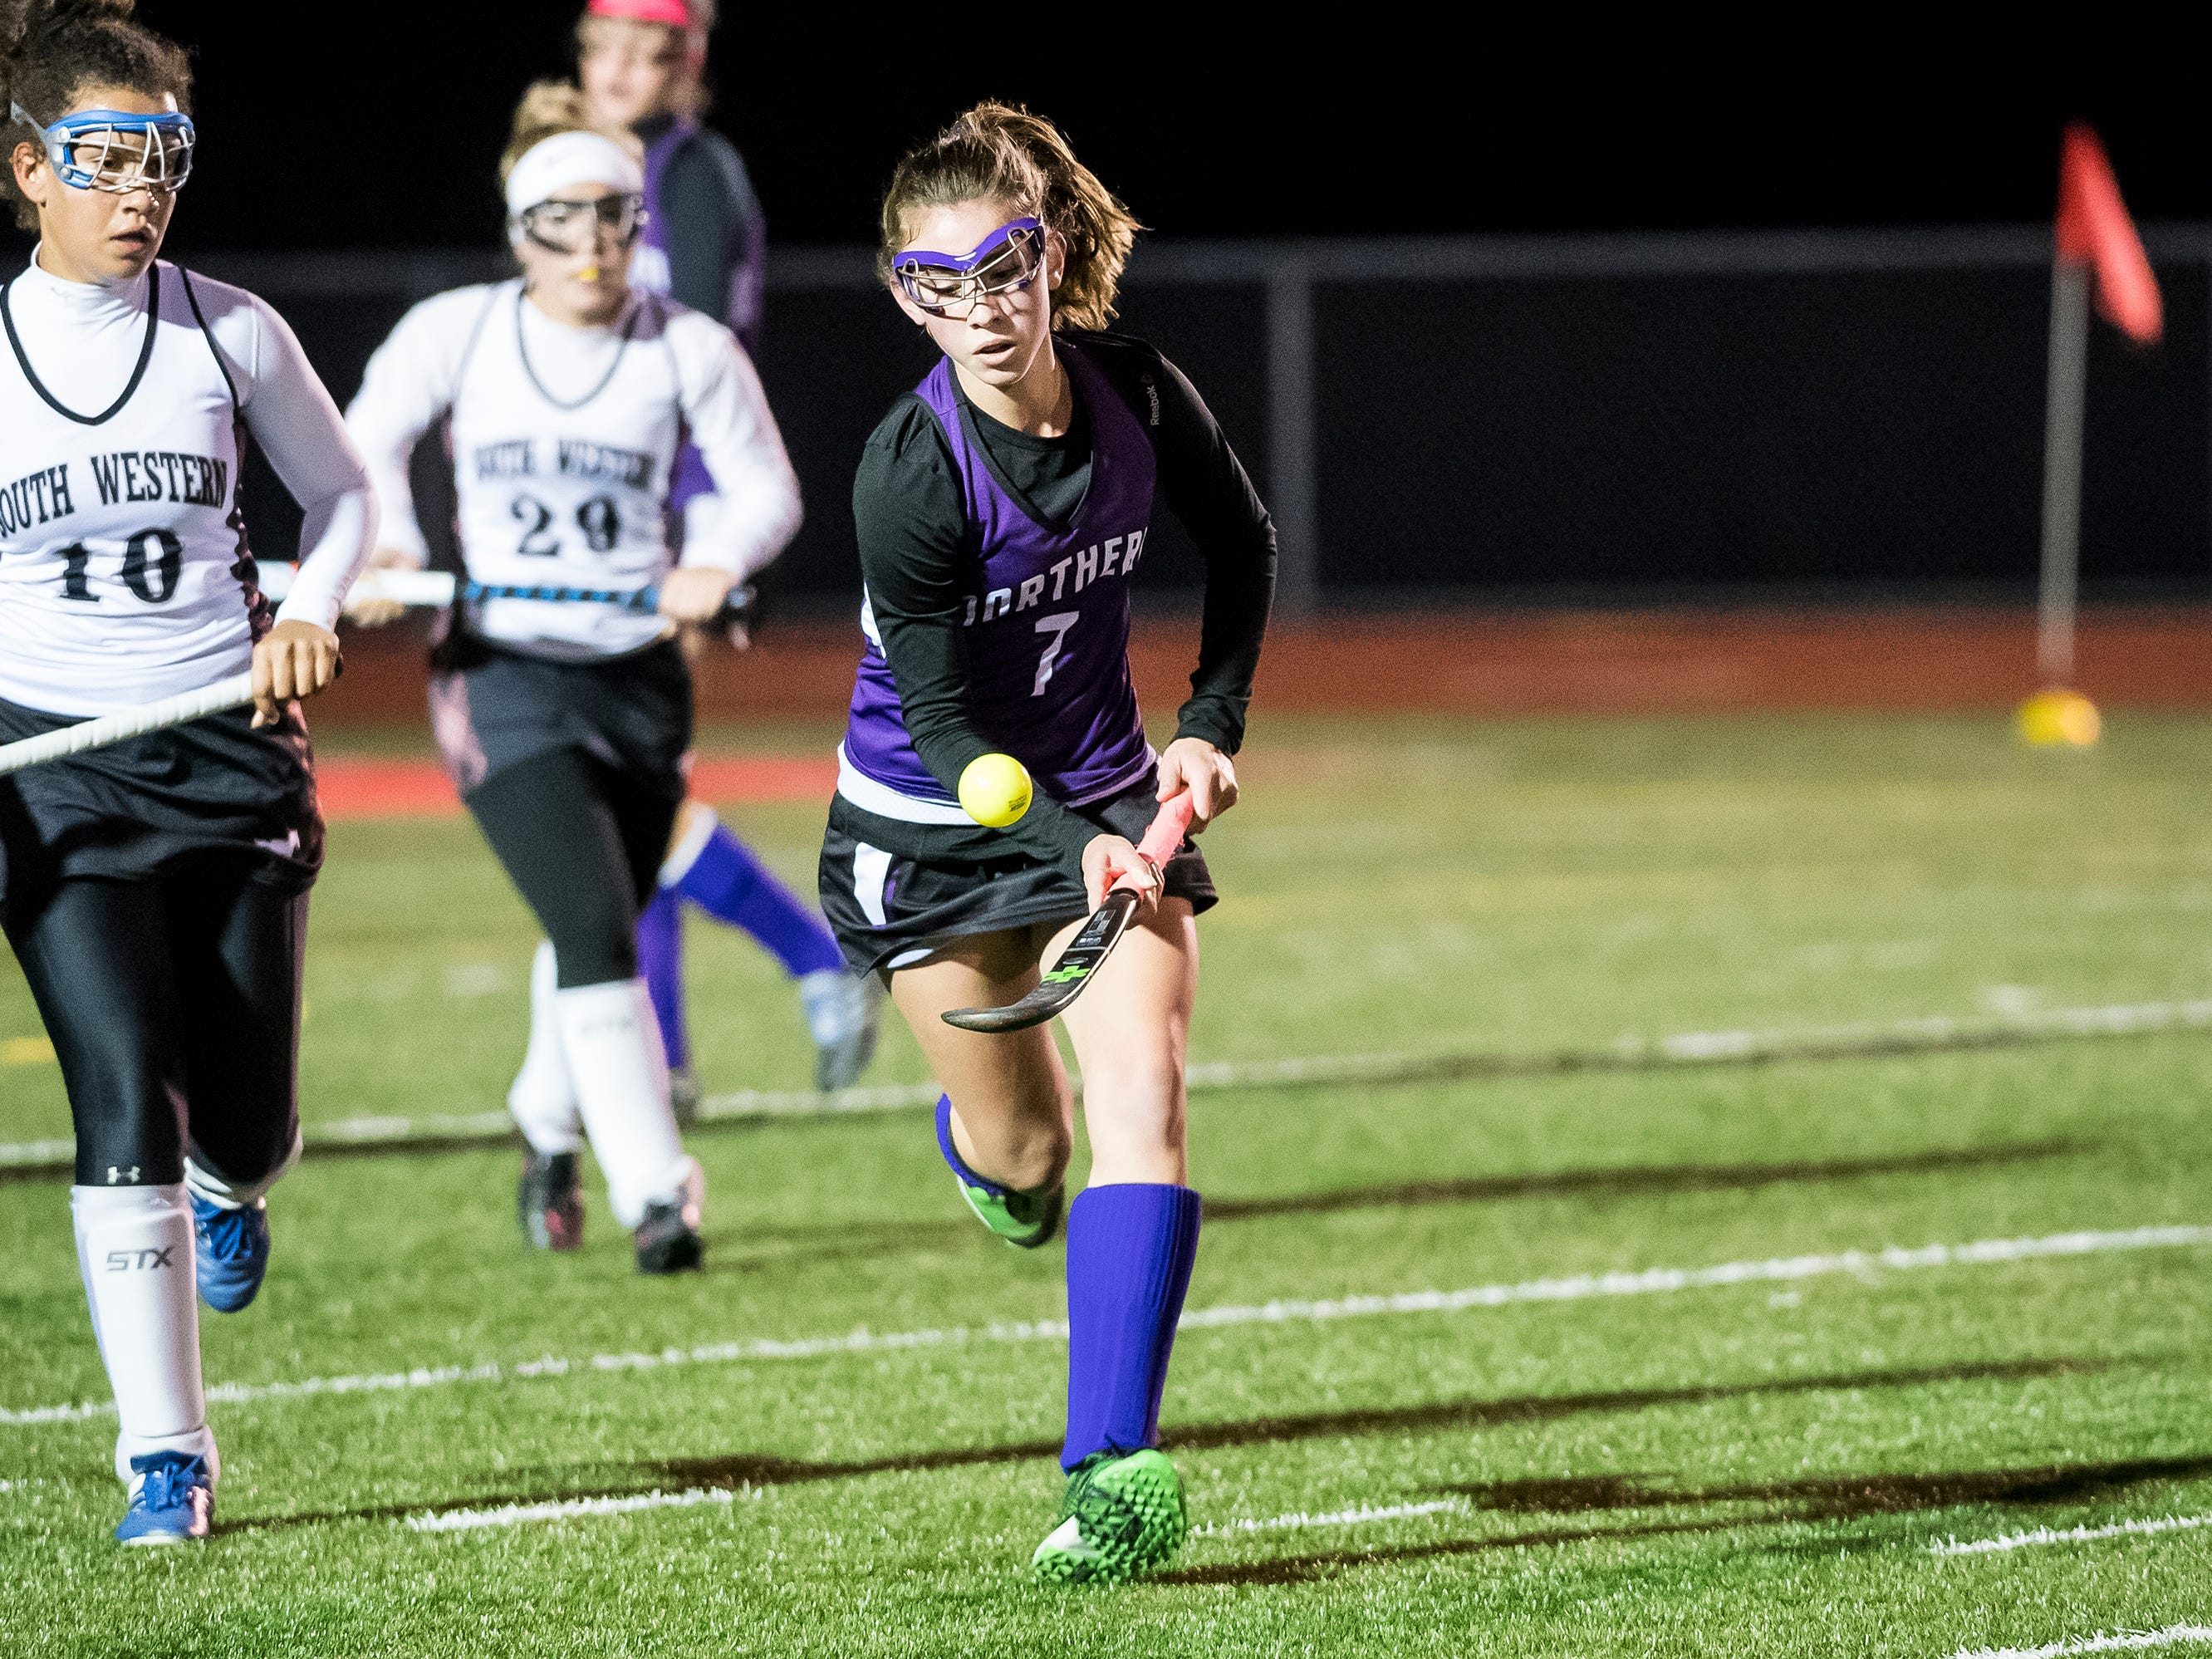 Northern's Kelsey Heltzel air dribbles during play against South Western in a PIAA District III first round game at Bermudian Springs High School on Wednesday, October 24, 2018. The Mustangs fell 4-2.